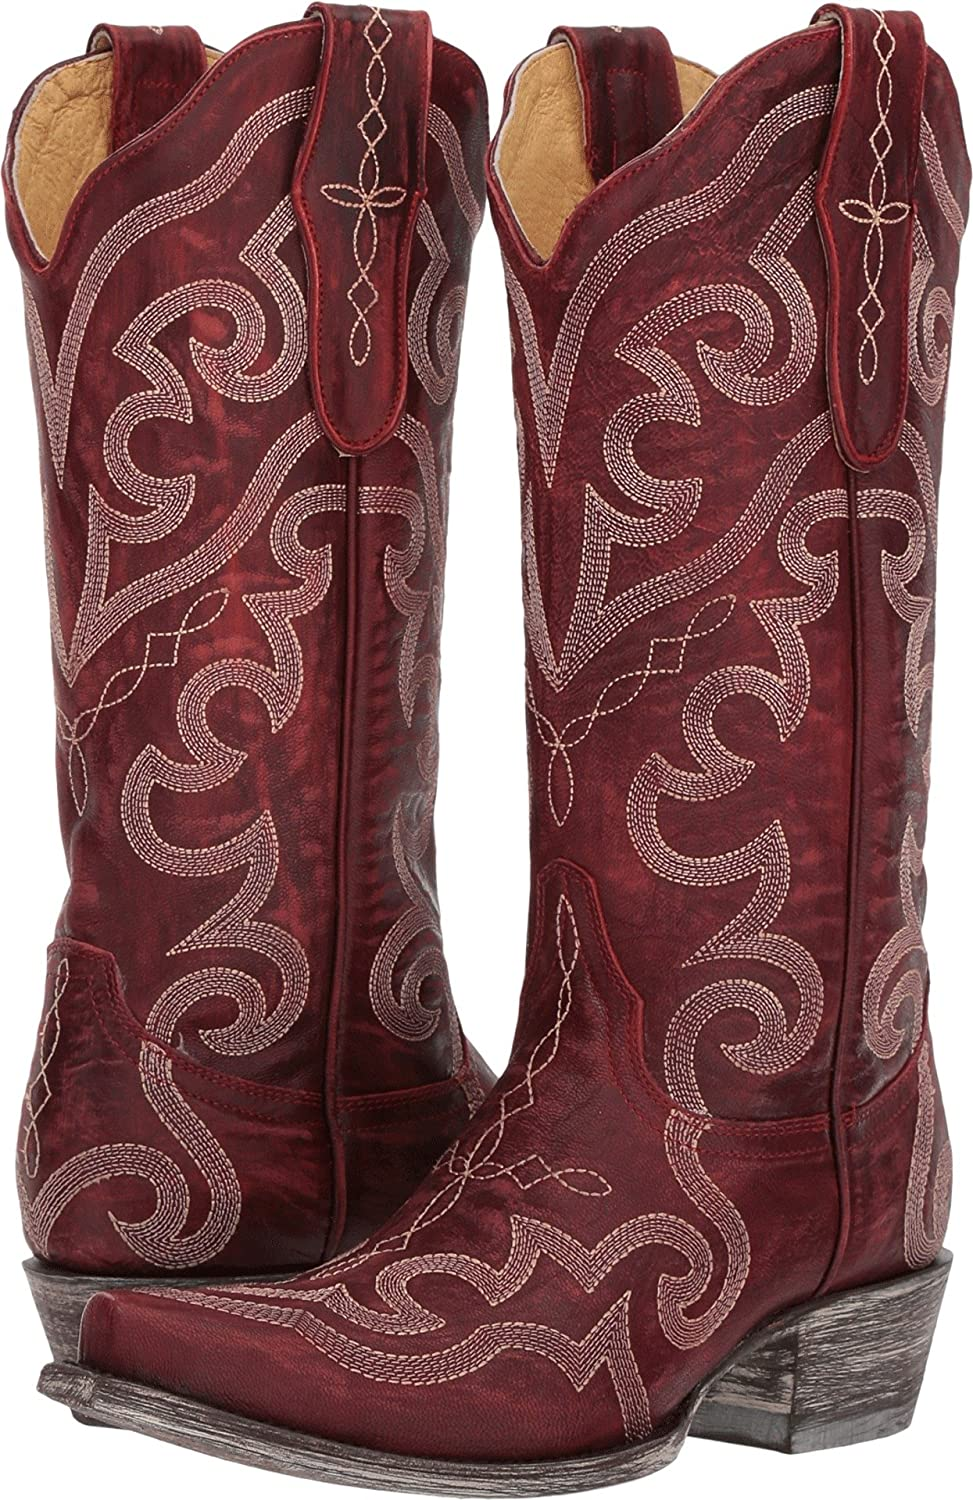 Old Gringo Womens Vittoria B079MD4Z5Q 6.5 B(M) US|Red